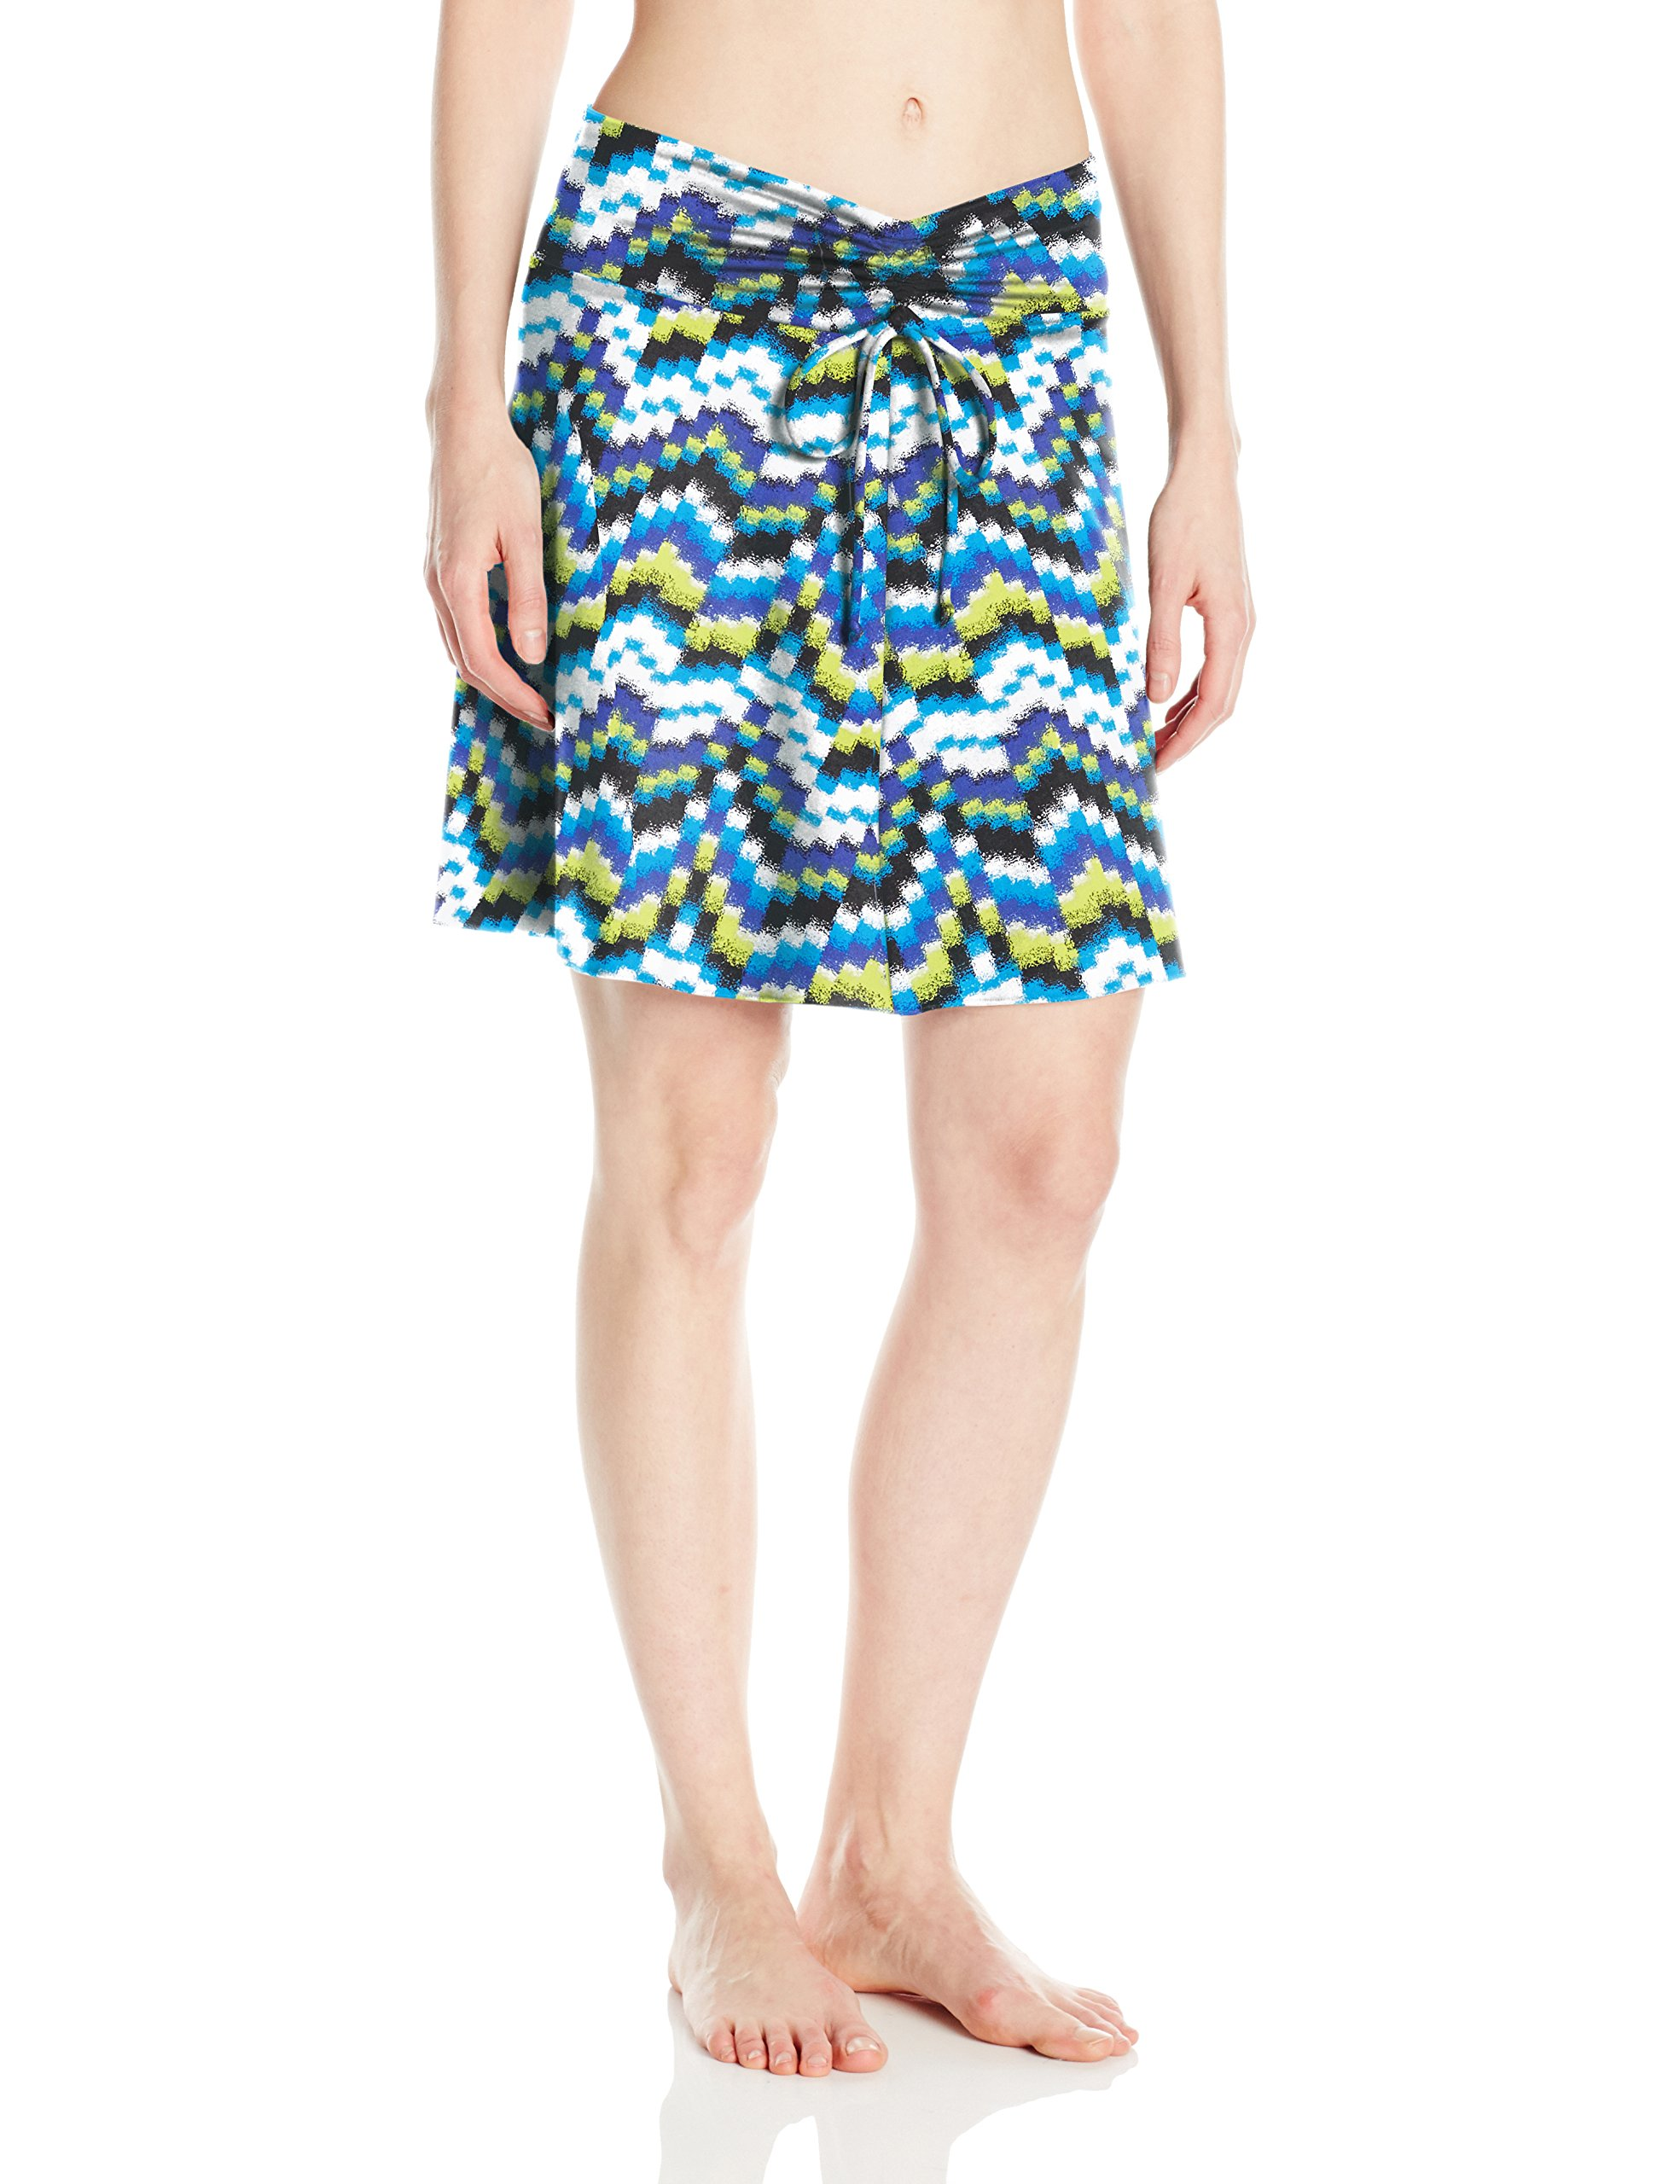 Soybu Women's Serendipity Skirt, Small, Amp Wave by Soybu